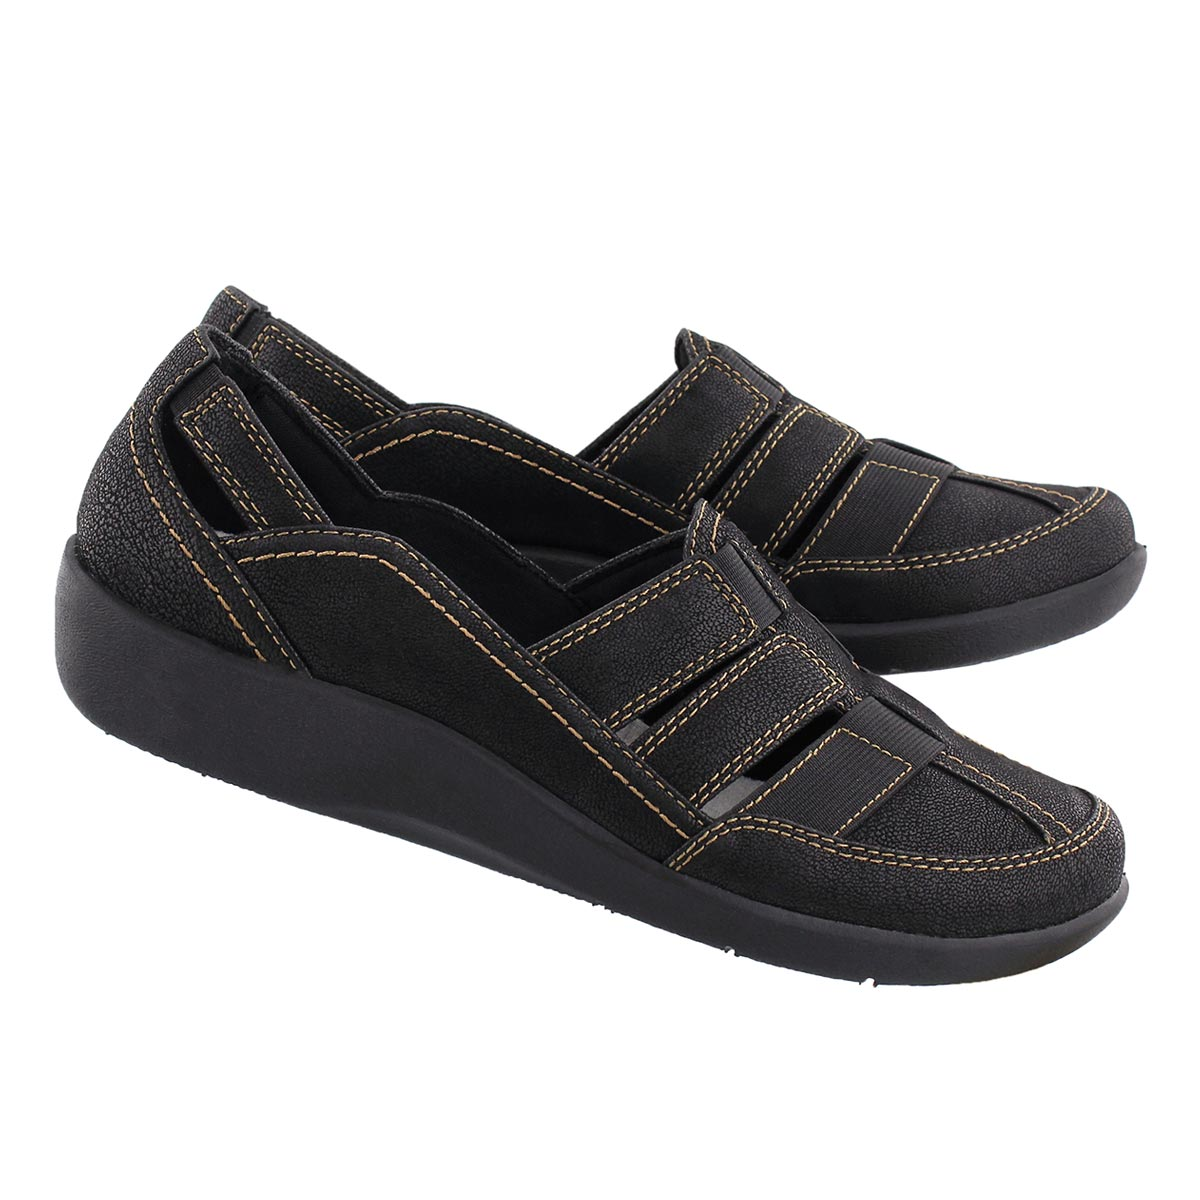 Lds Sillian Stork black casual loafer